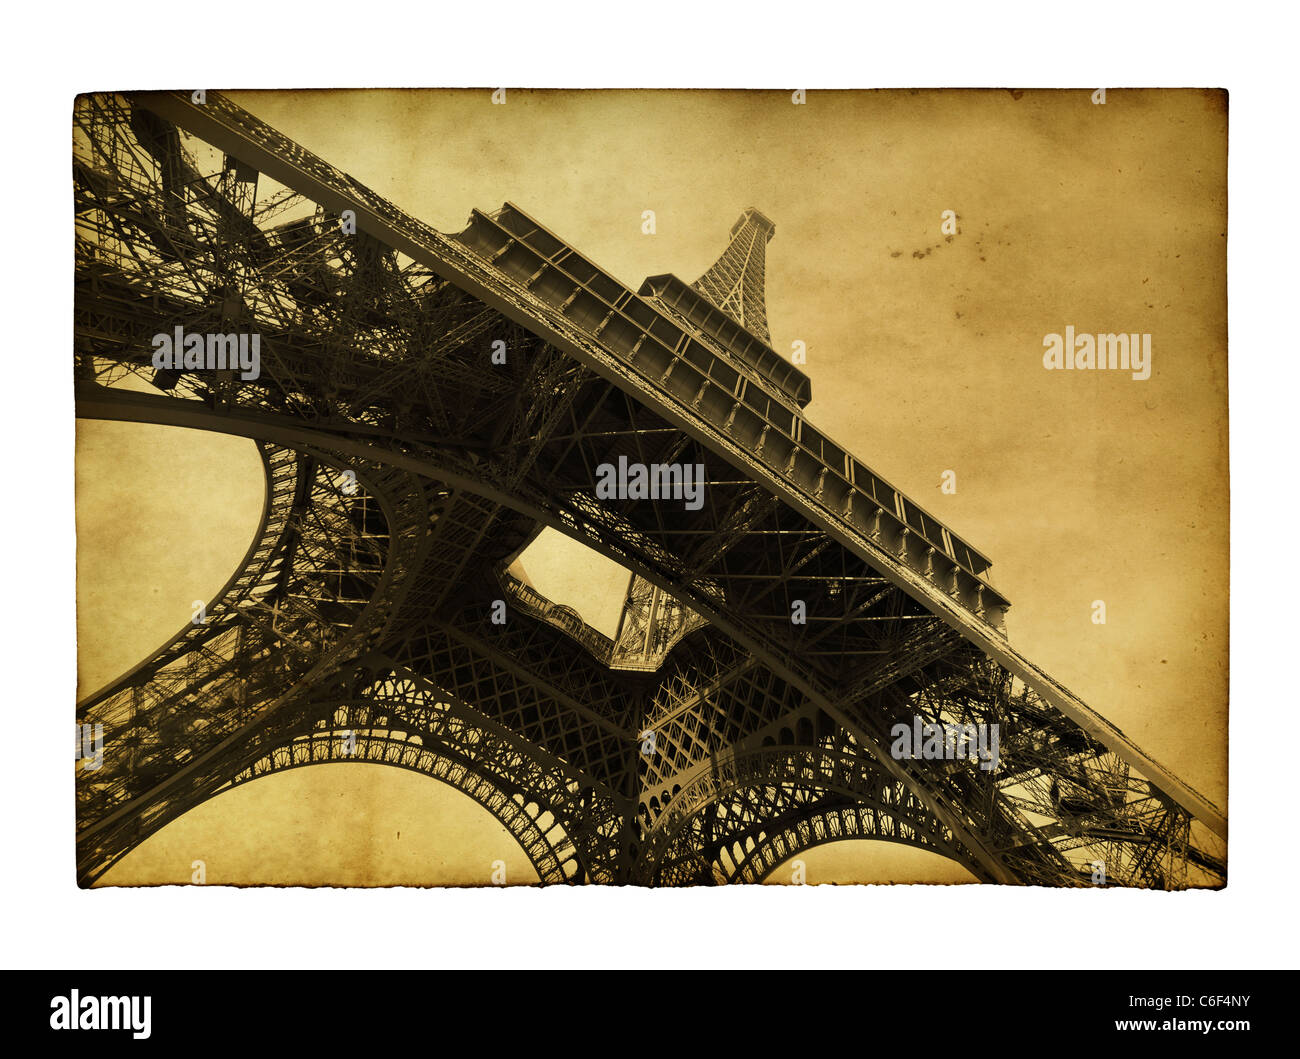 Vntage postcard with Eiffel tower isolated over white background - Stock Image